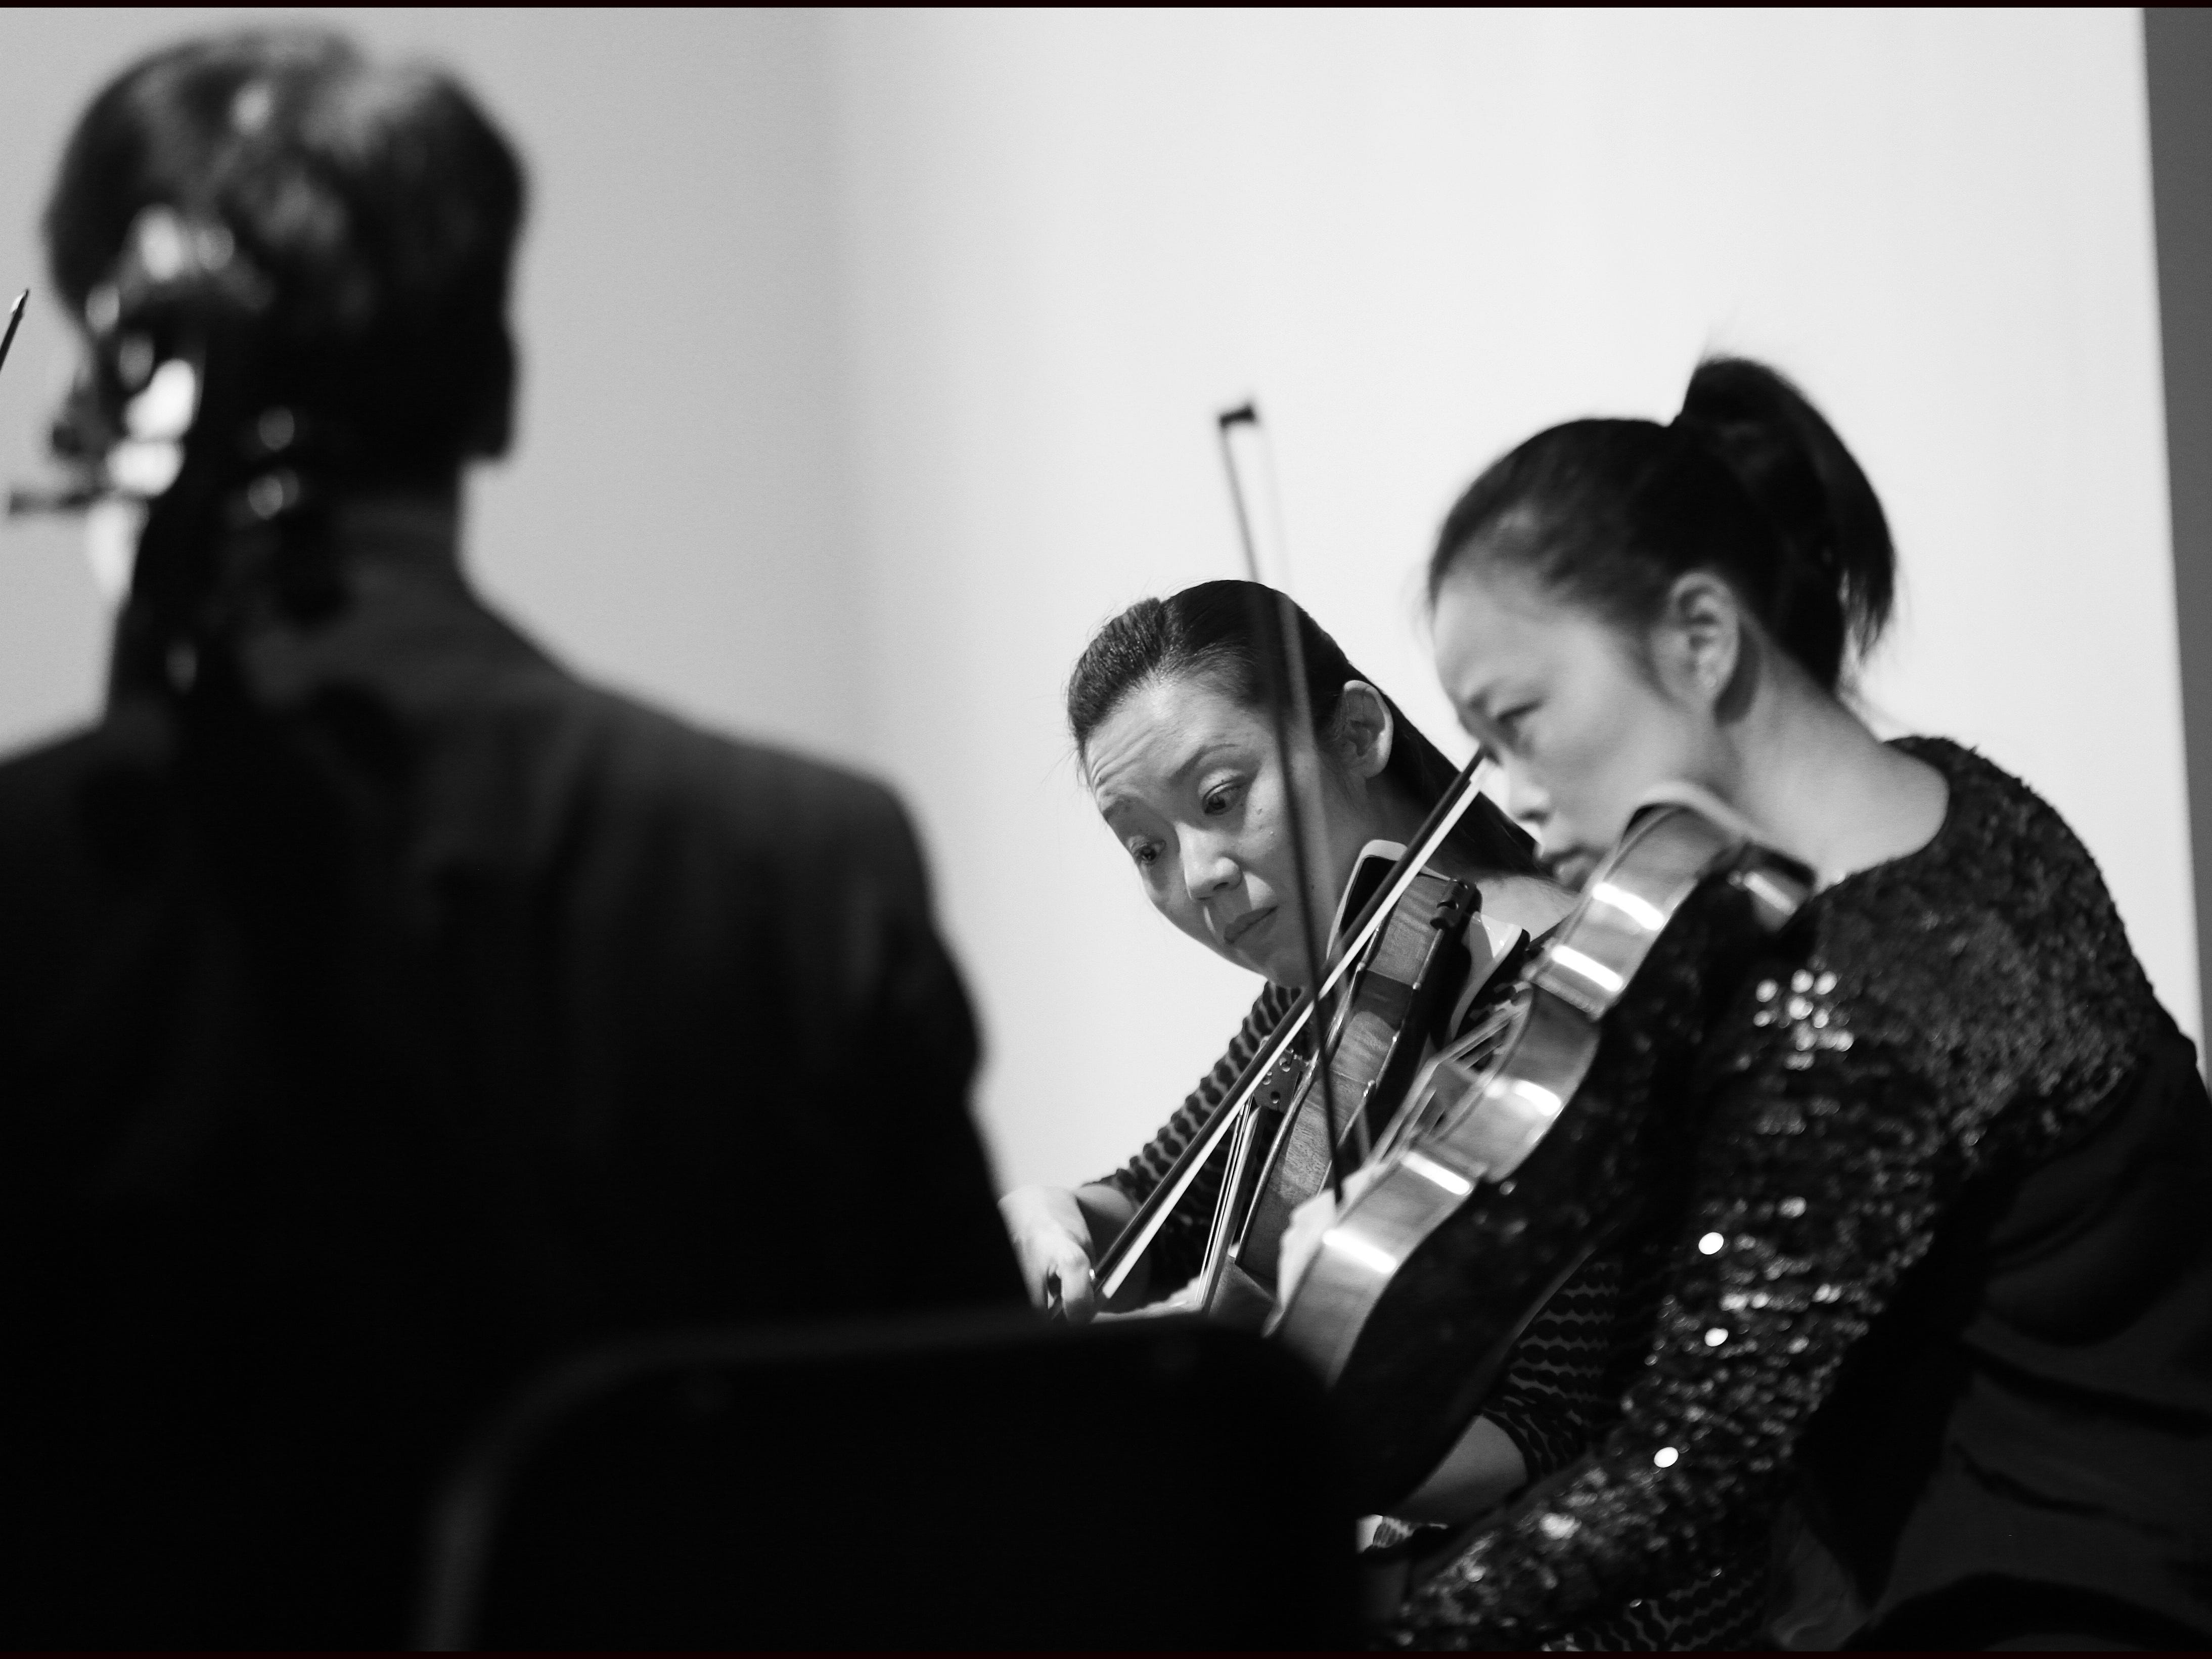 El Paso Pro Musica kicked off their 2019 Chamber Music Festival Thursday with a Bach's Lunch at the El Paso Museum of Art featuring the Vega String Quartet. The festival runs through February 2 with several performances around El Paso. For a complete list of events visit elpasopromusica.org